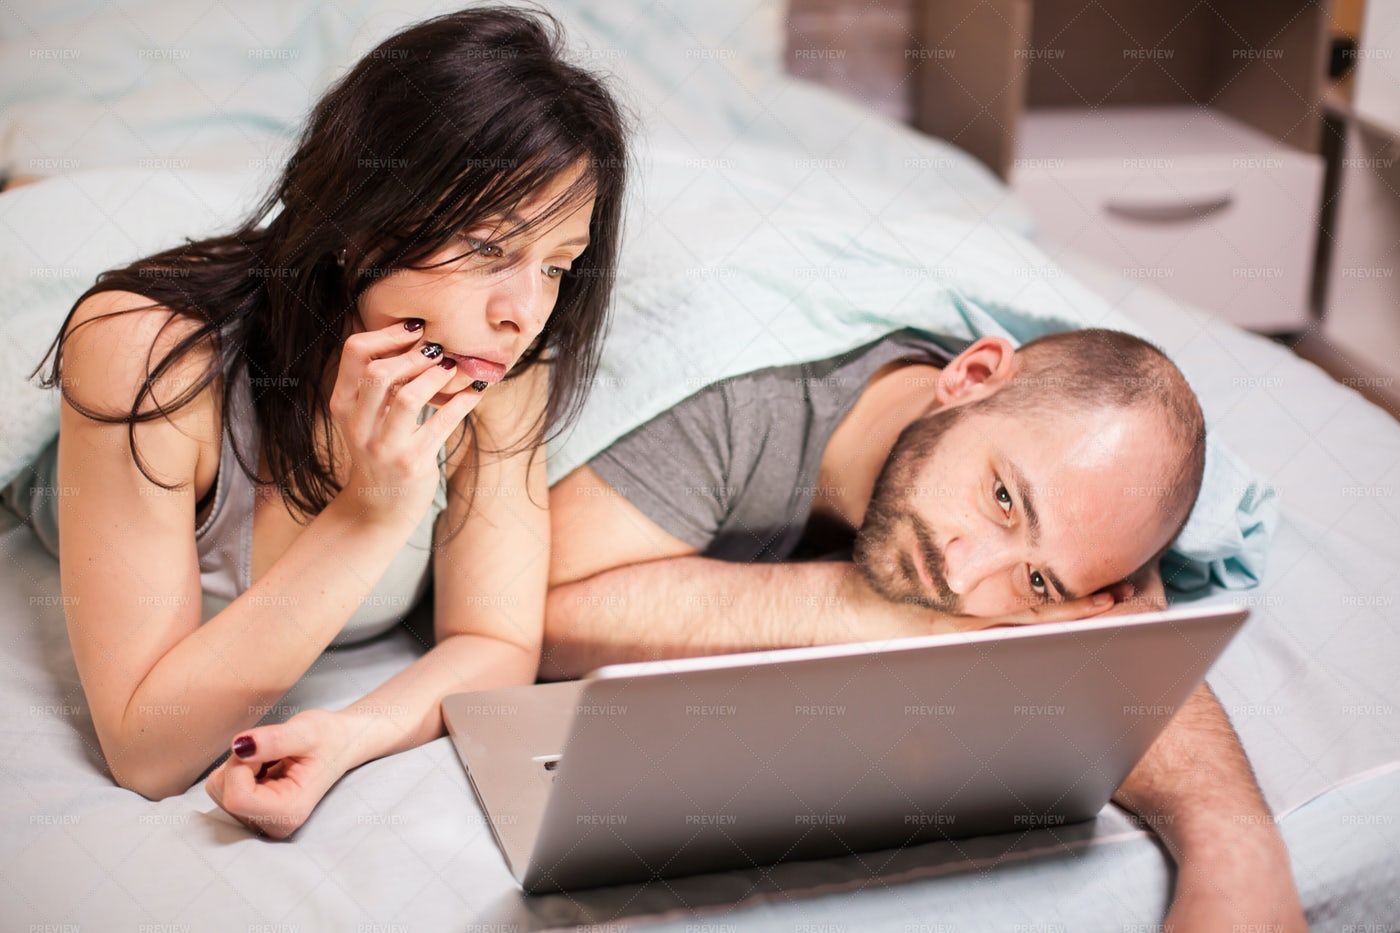 Bored Couple Watching A Movie: Stock Photos